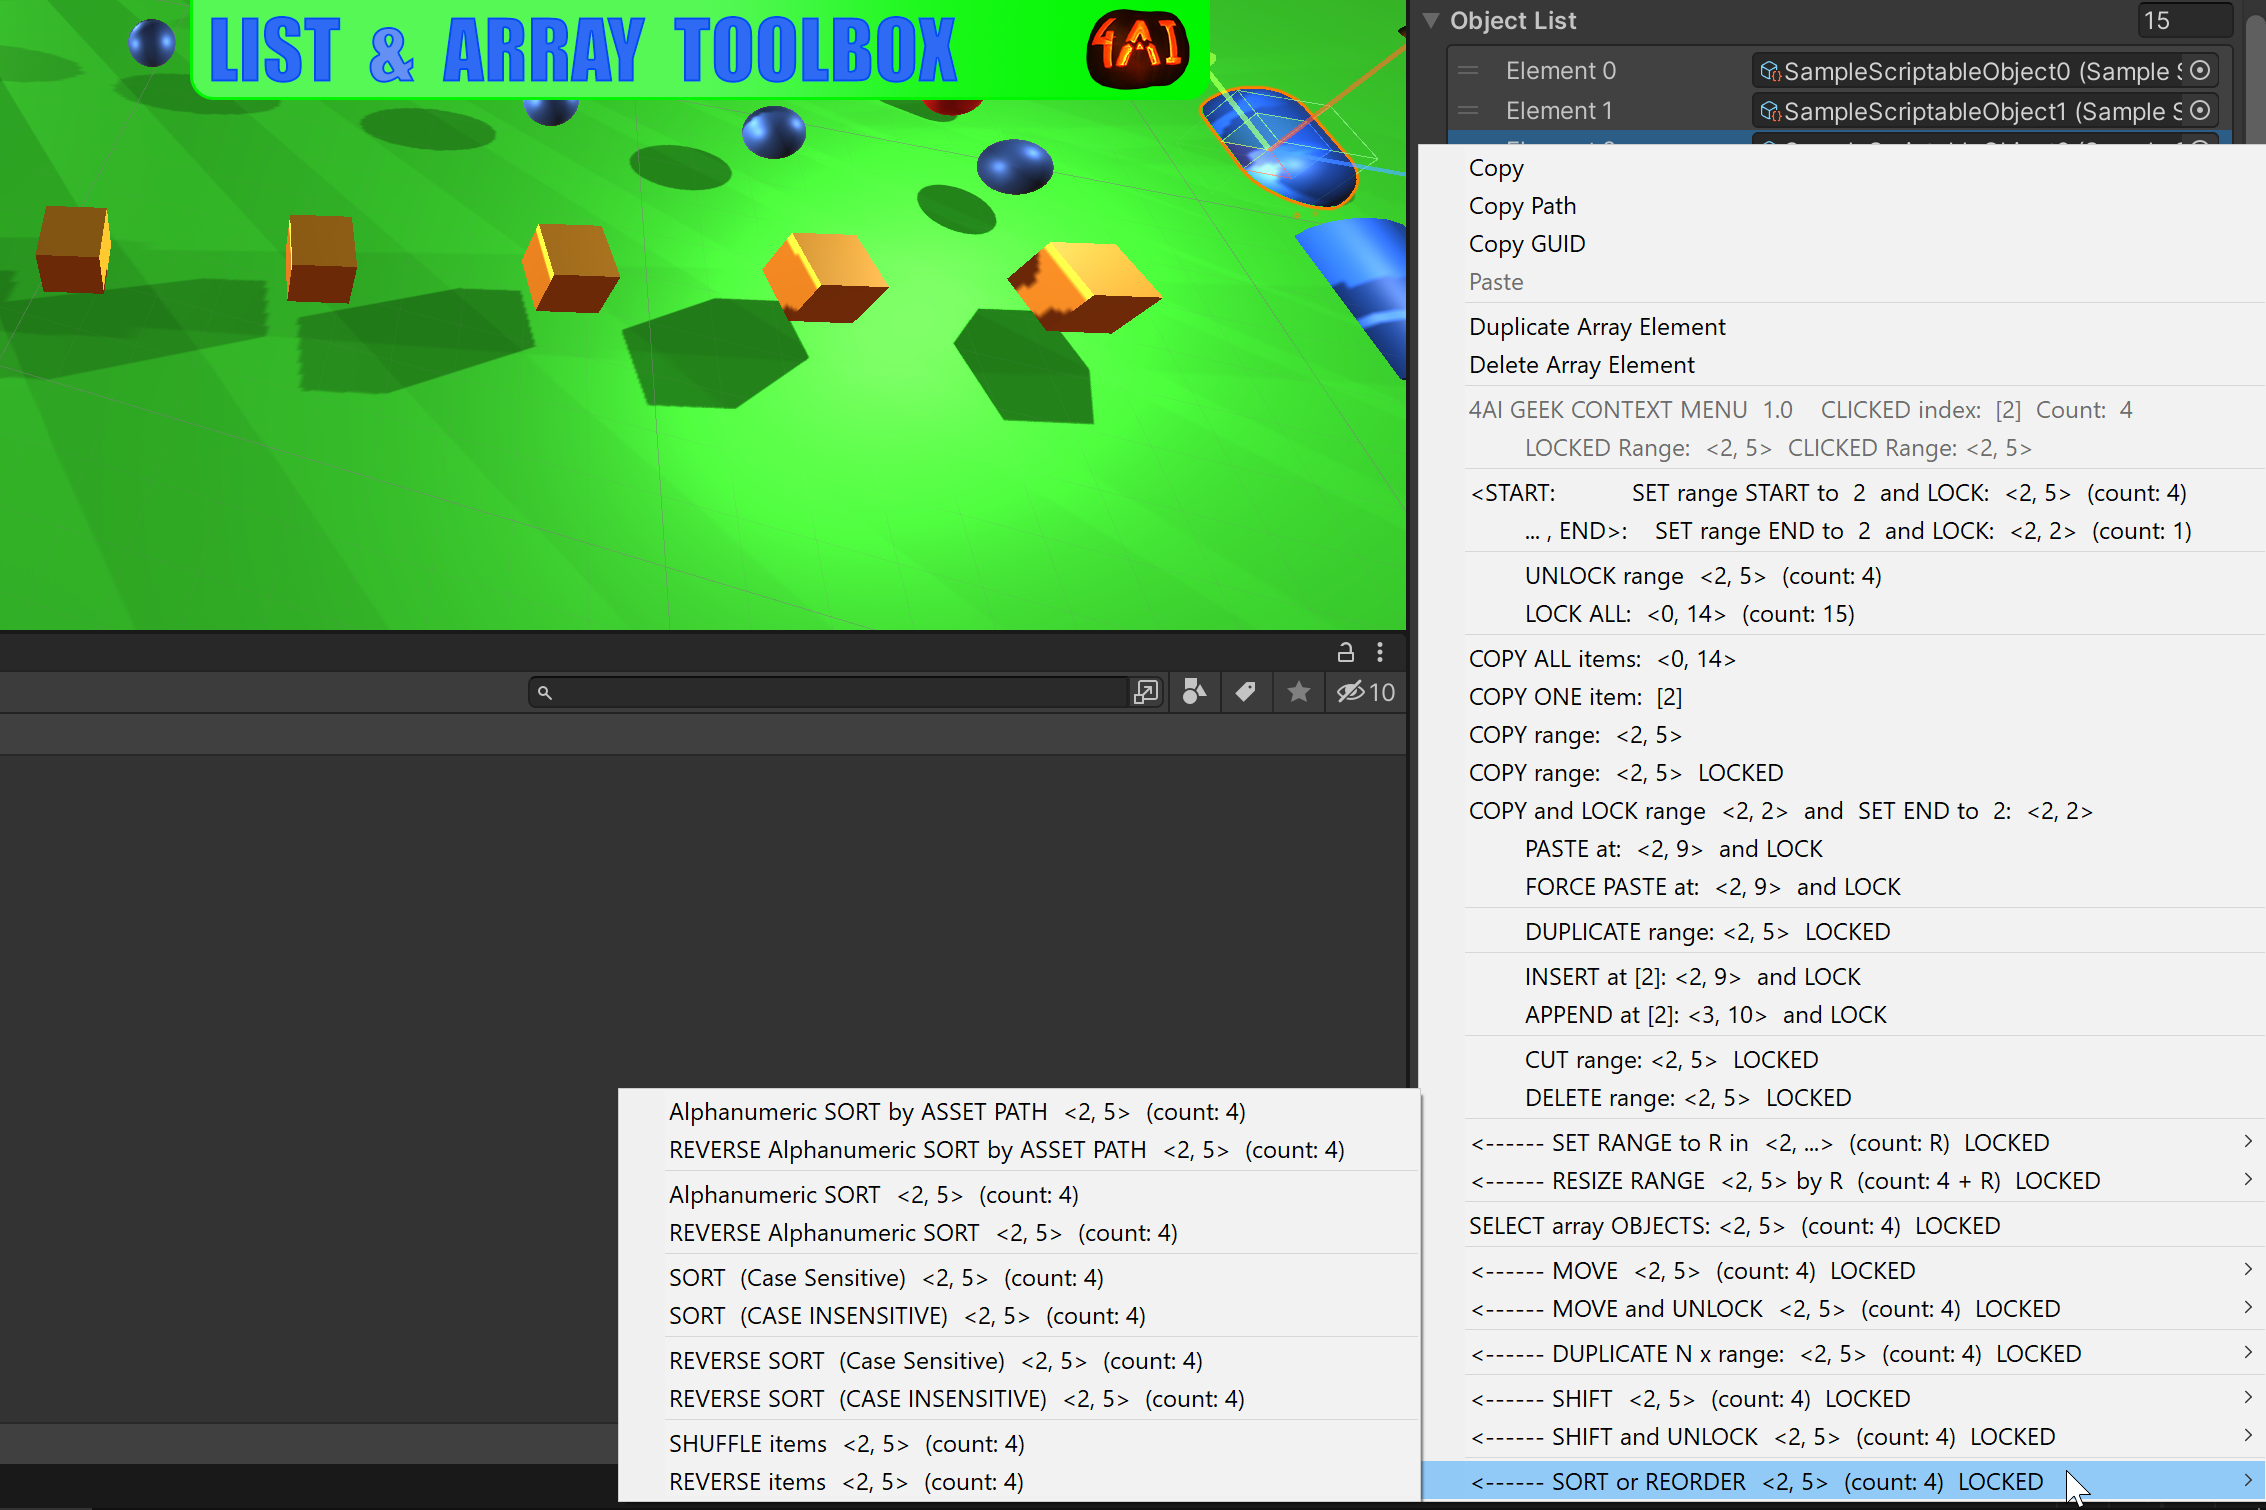 list-array-toolbox-objects-1.png